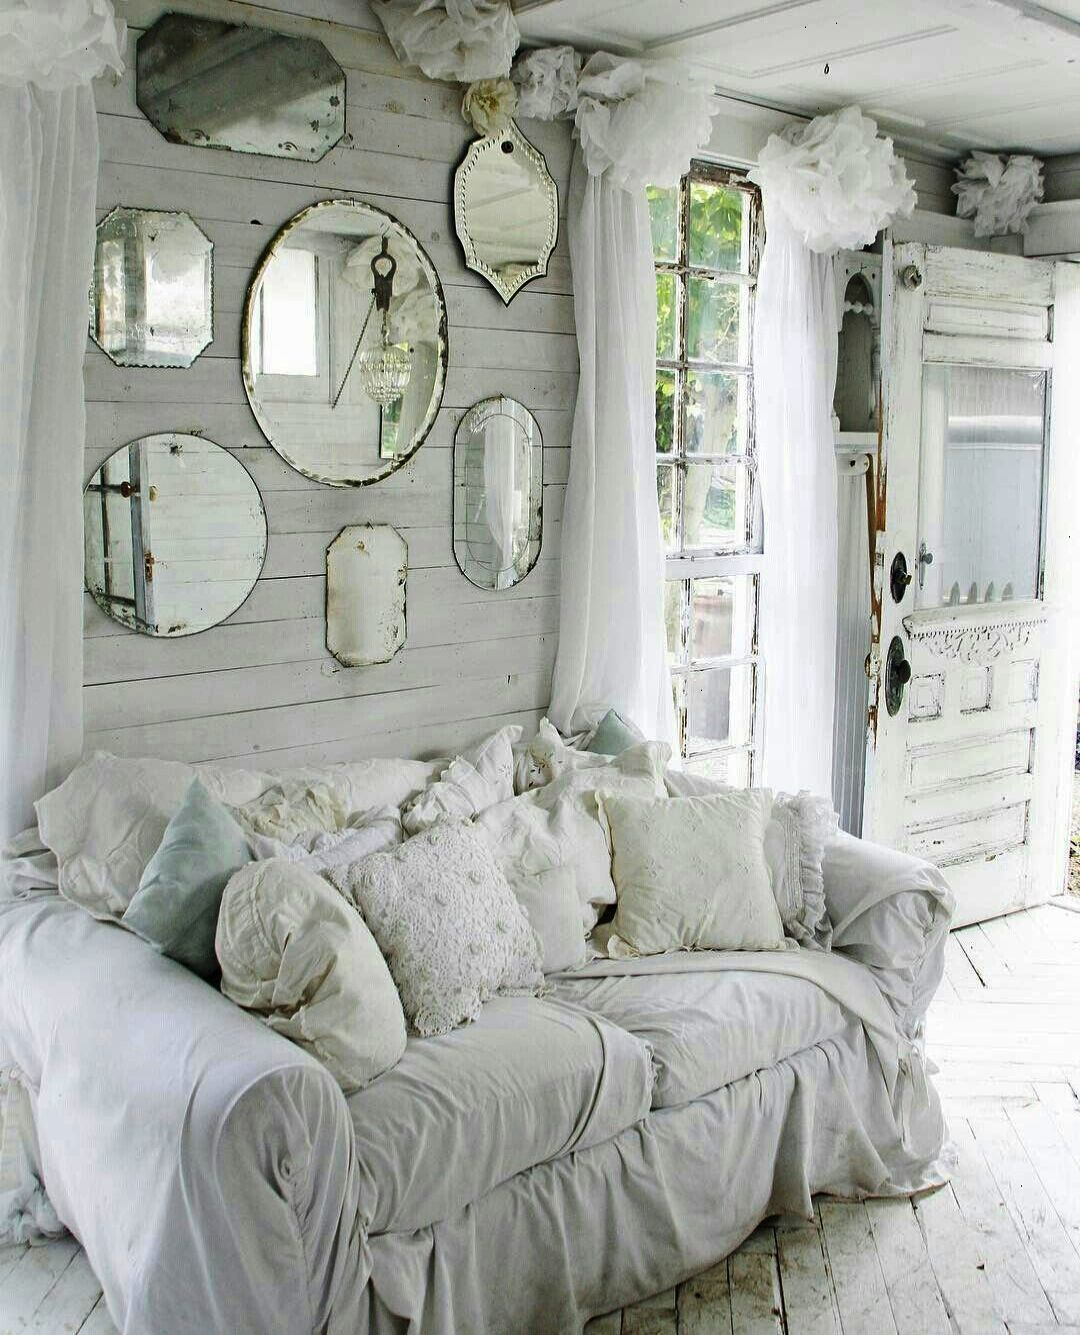 Véritable salon shabby chic.  Source: Pinterest